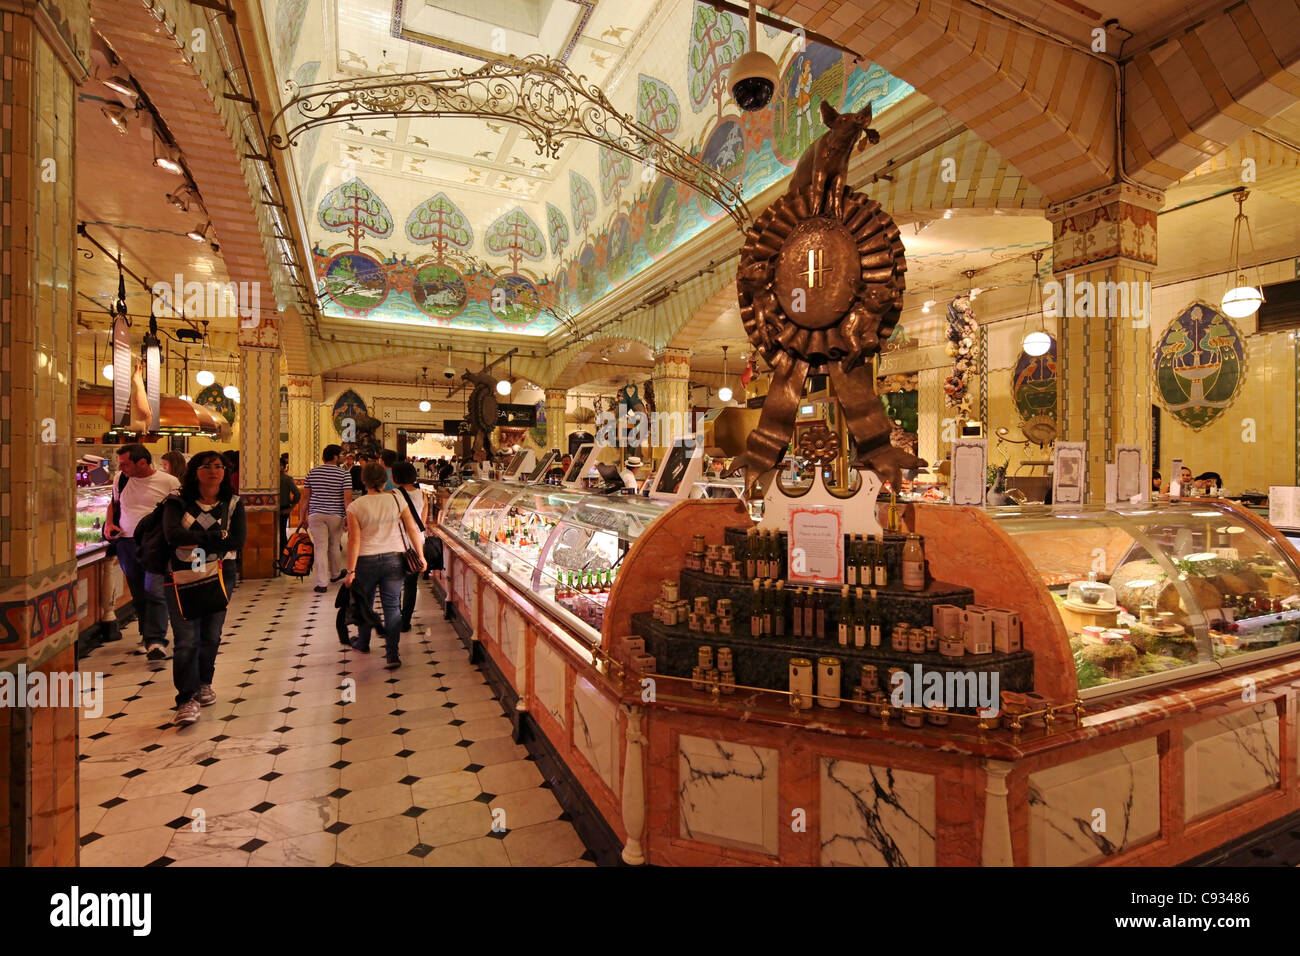 The Food Hall In Harrods Department Store London